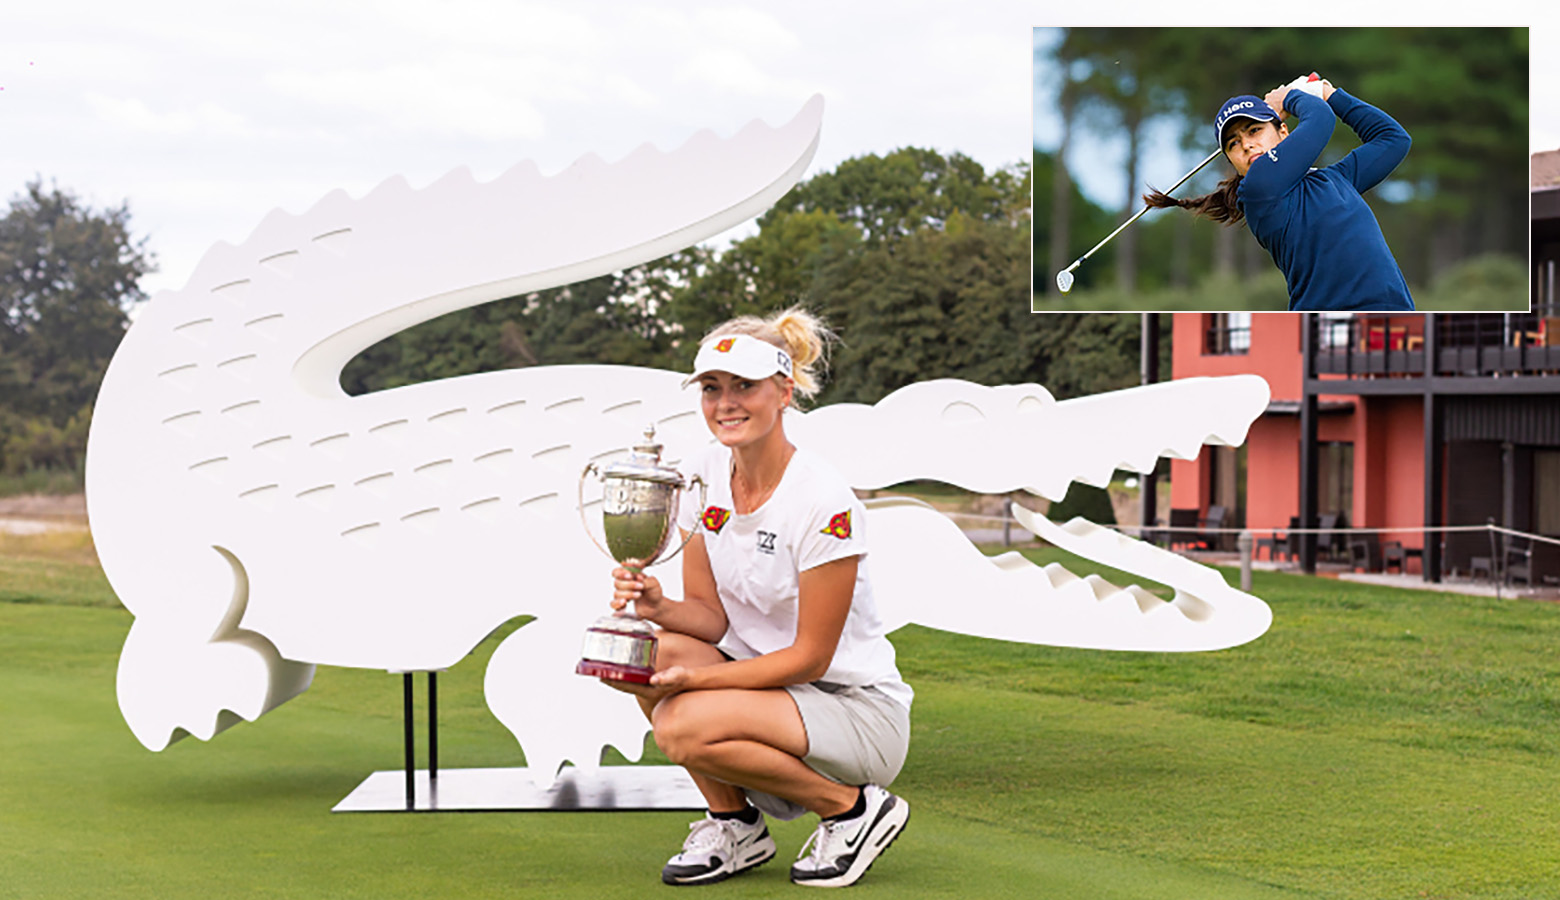 Tvesa falters in final round, finishes Tied-10th at Open de France